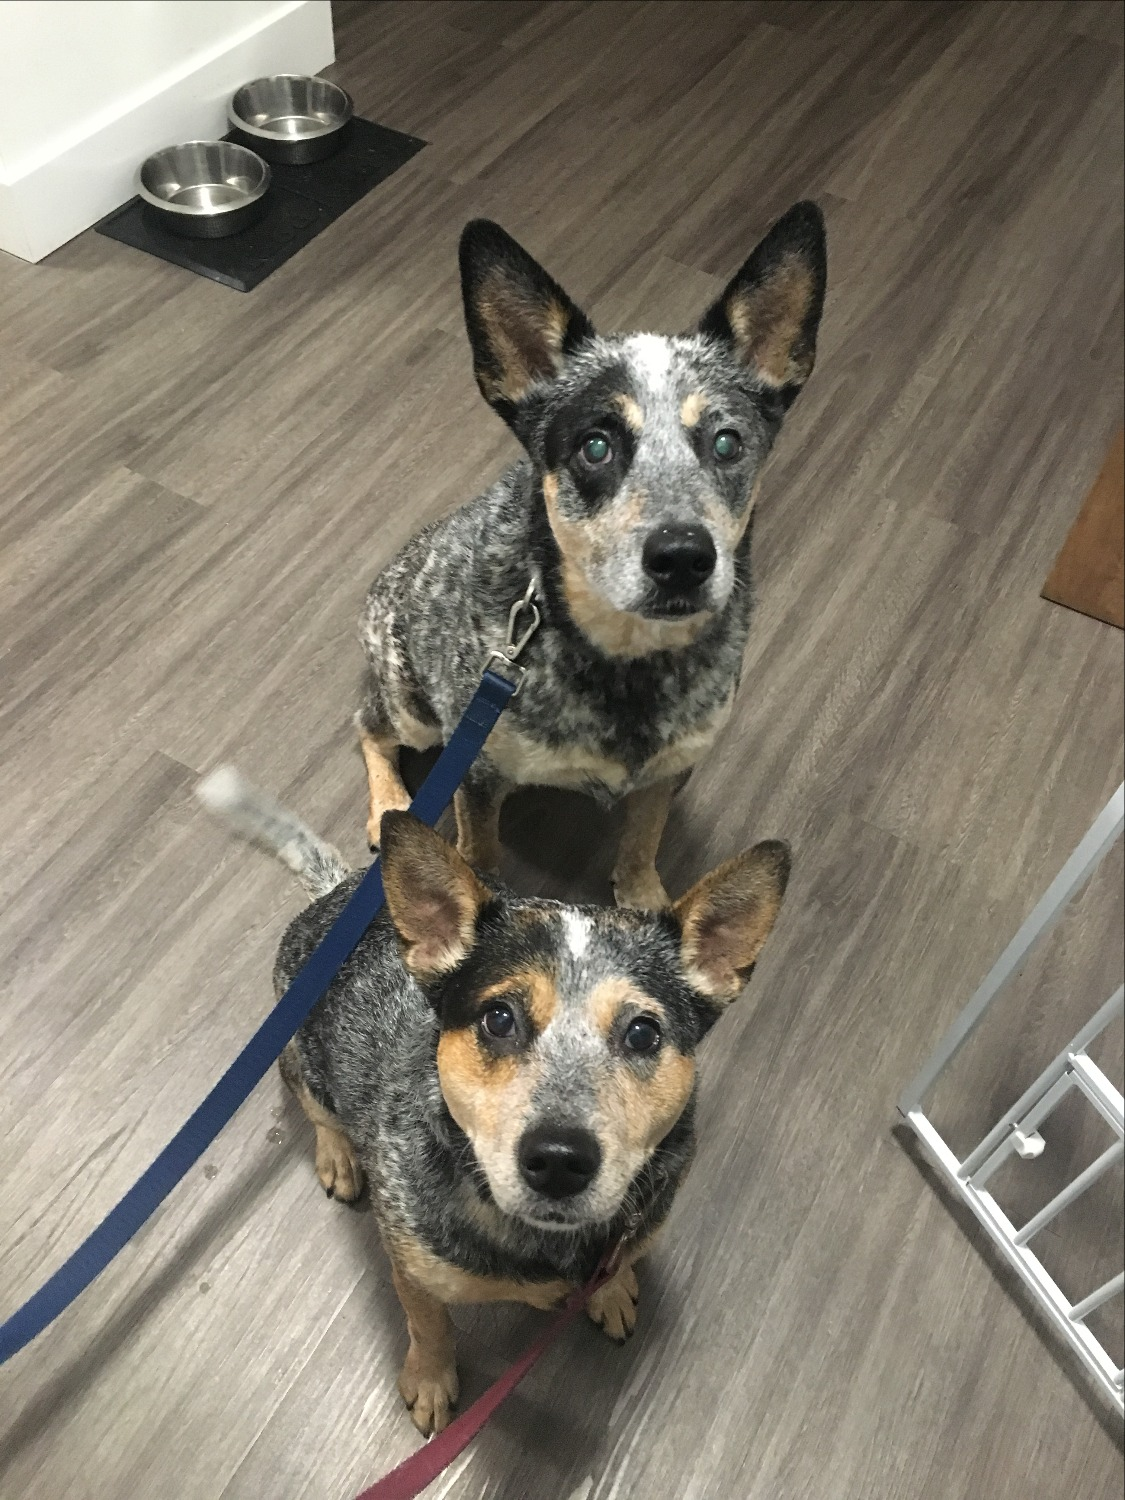 Mia and Max are ready for their walk!